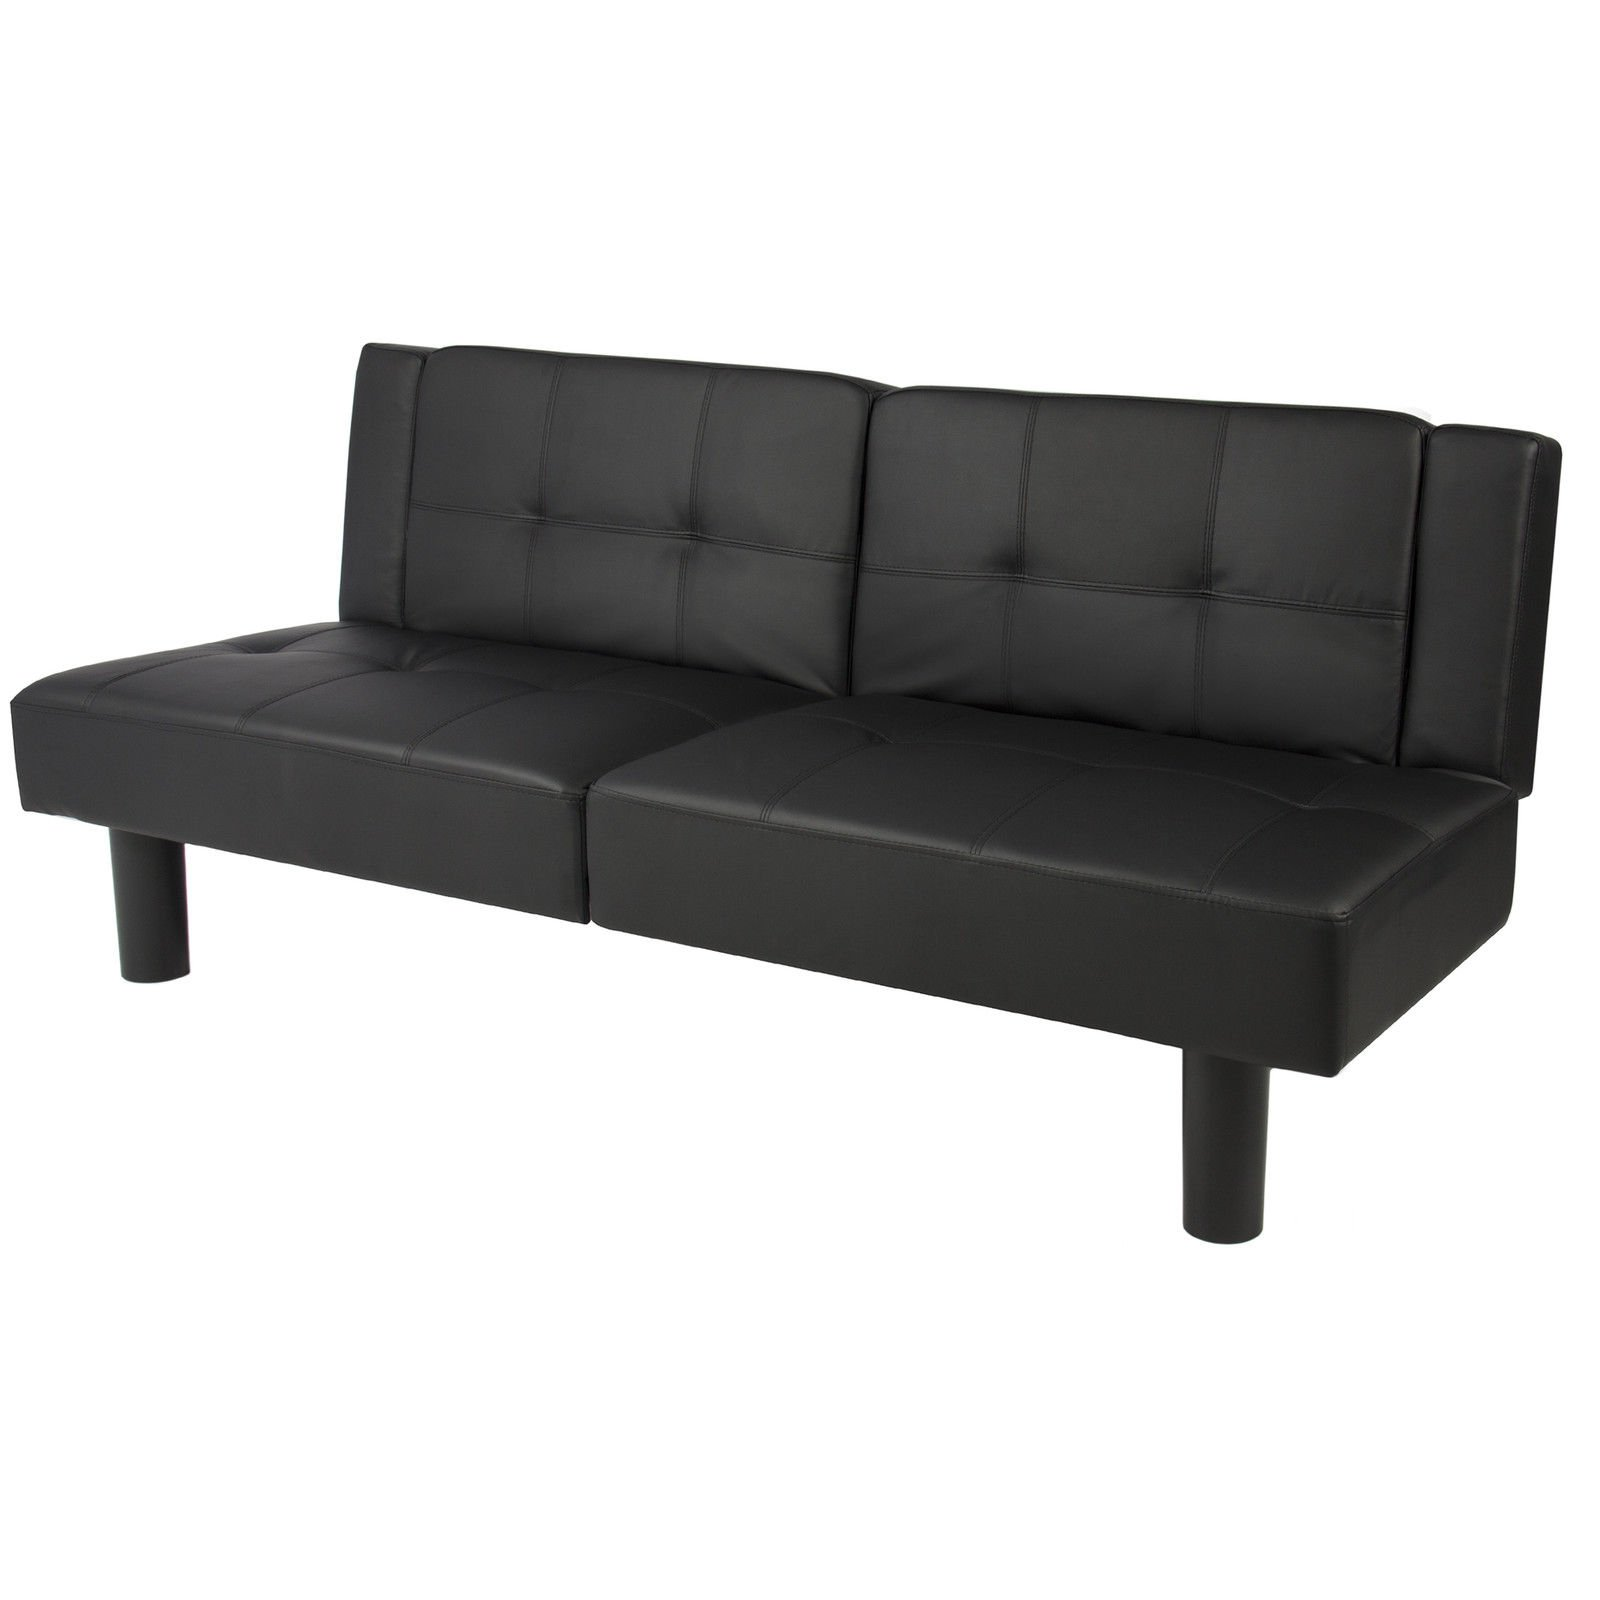 get quotations    ltl black leather convertible faux fold down futon sofa bed couch sleeper furniture lounge cheap single bed sofa bed find single bed sofa bed deals on line      rh   guide alibaba